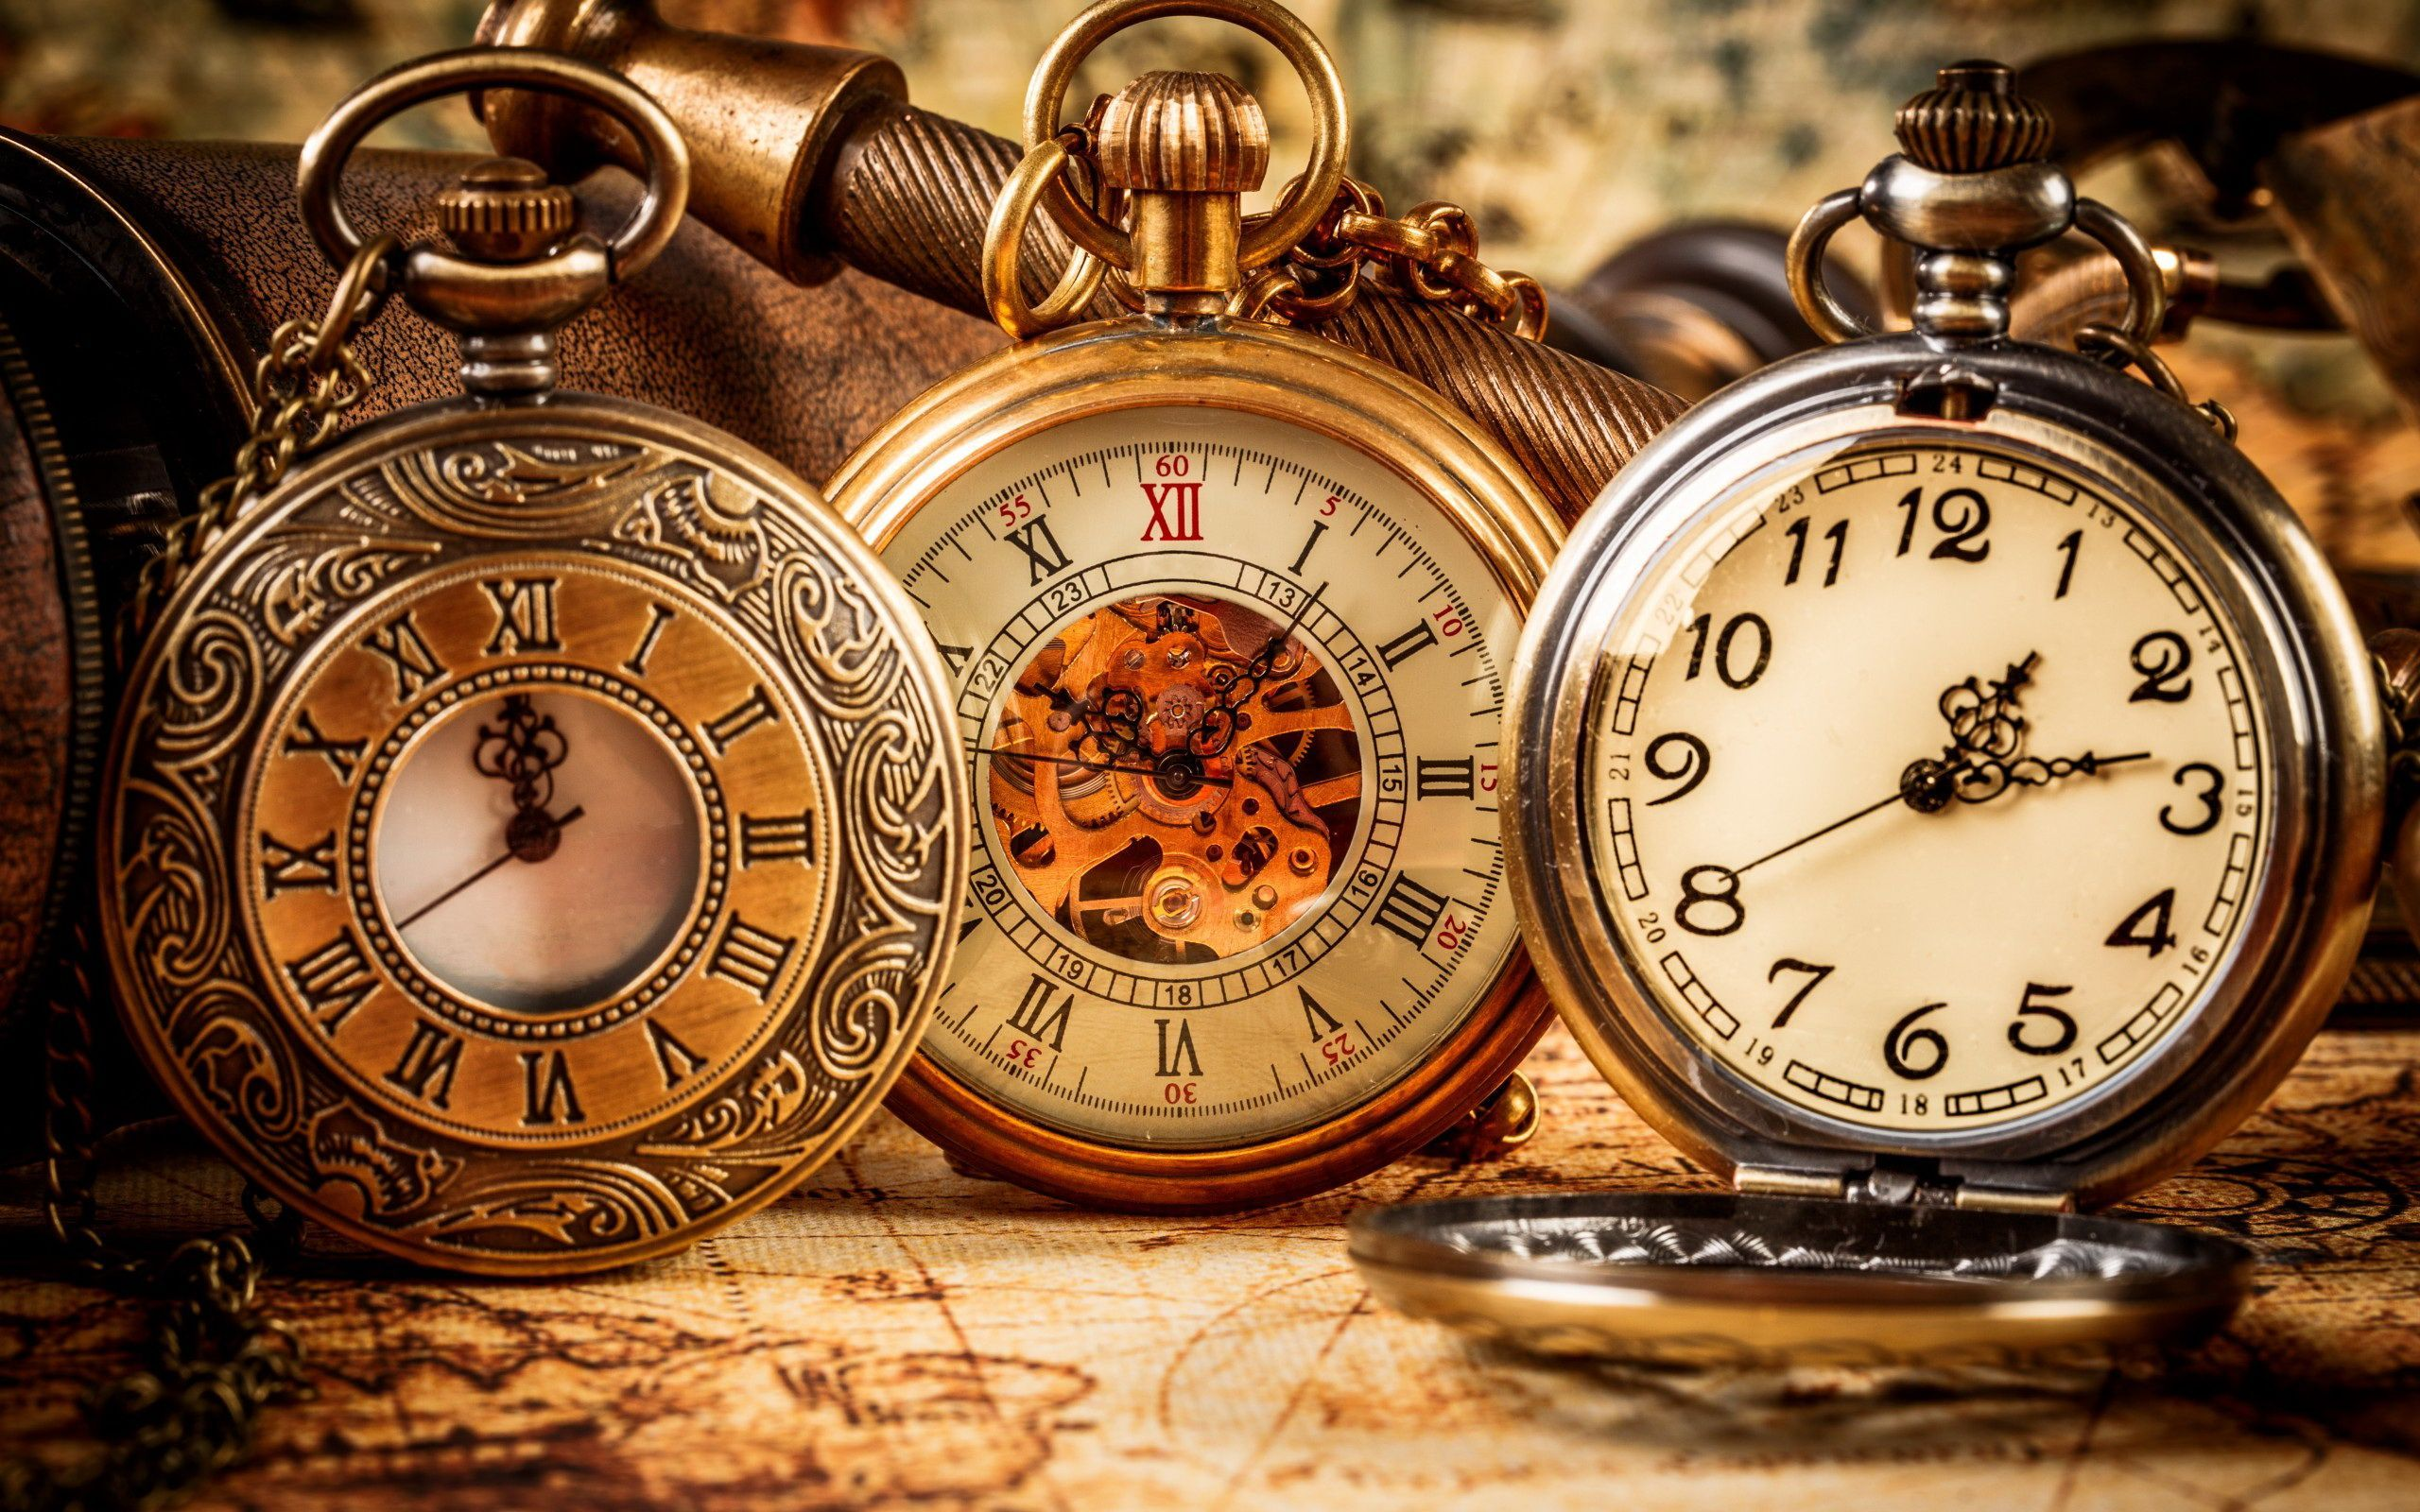 Pocket watch wallpaper  Watch Fob Watch Pocket Watch Full HD Smashing Wallpaper Free HD ...